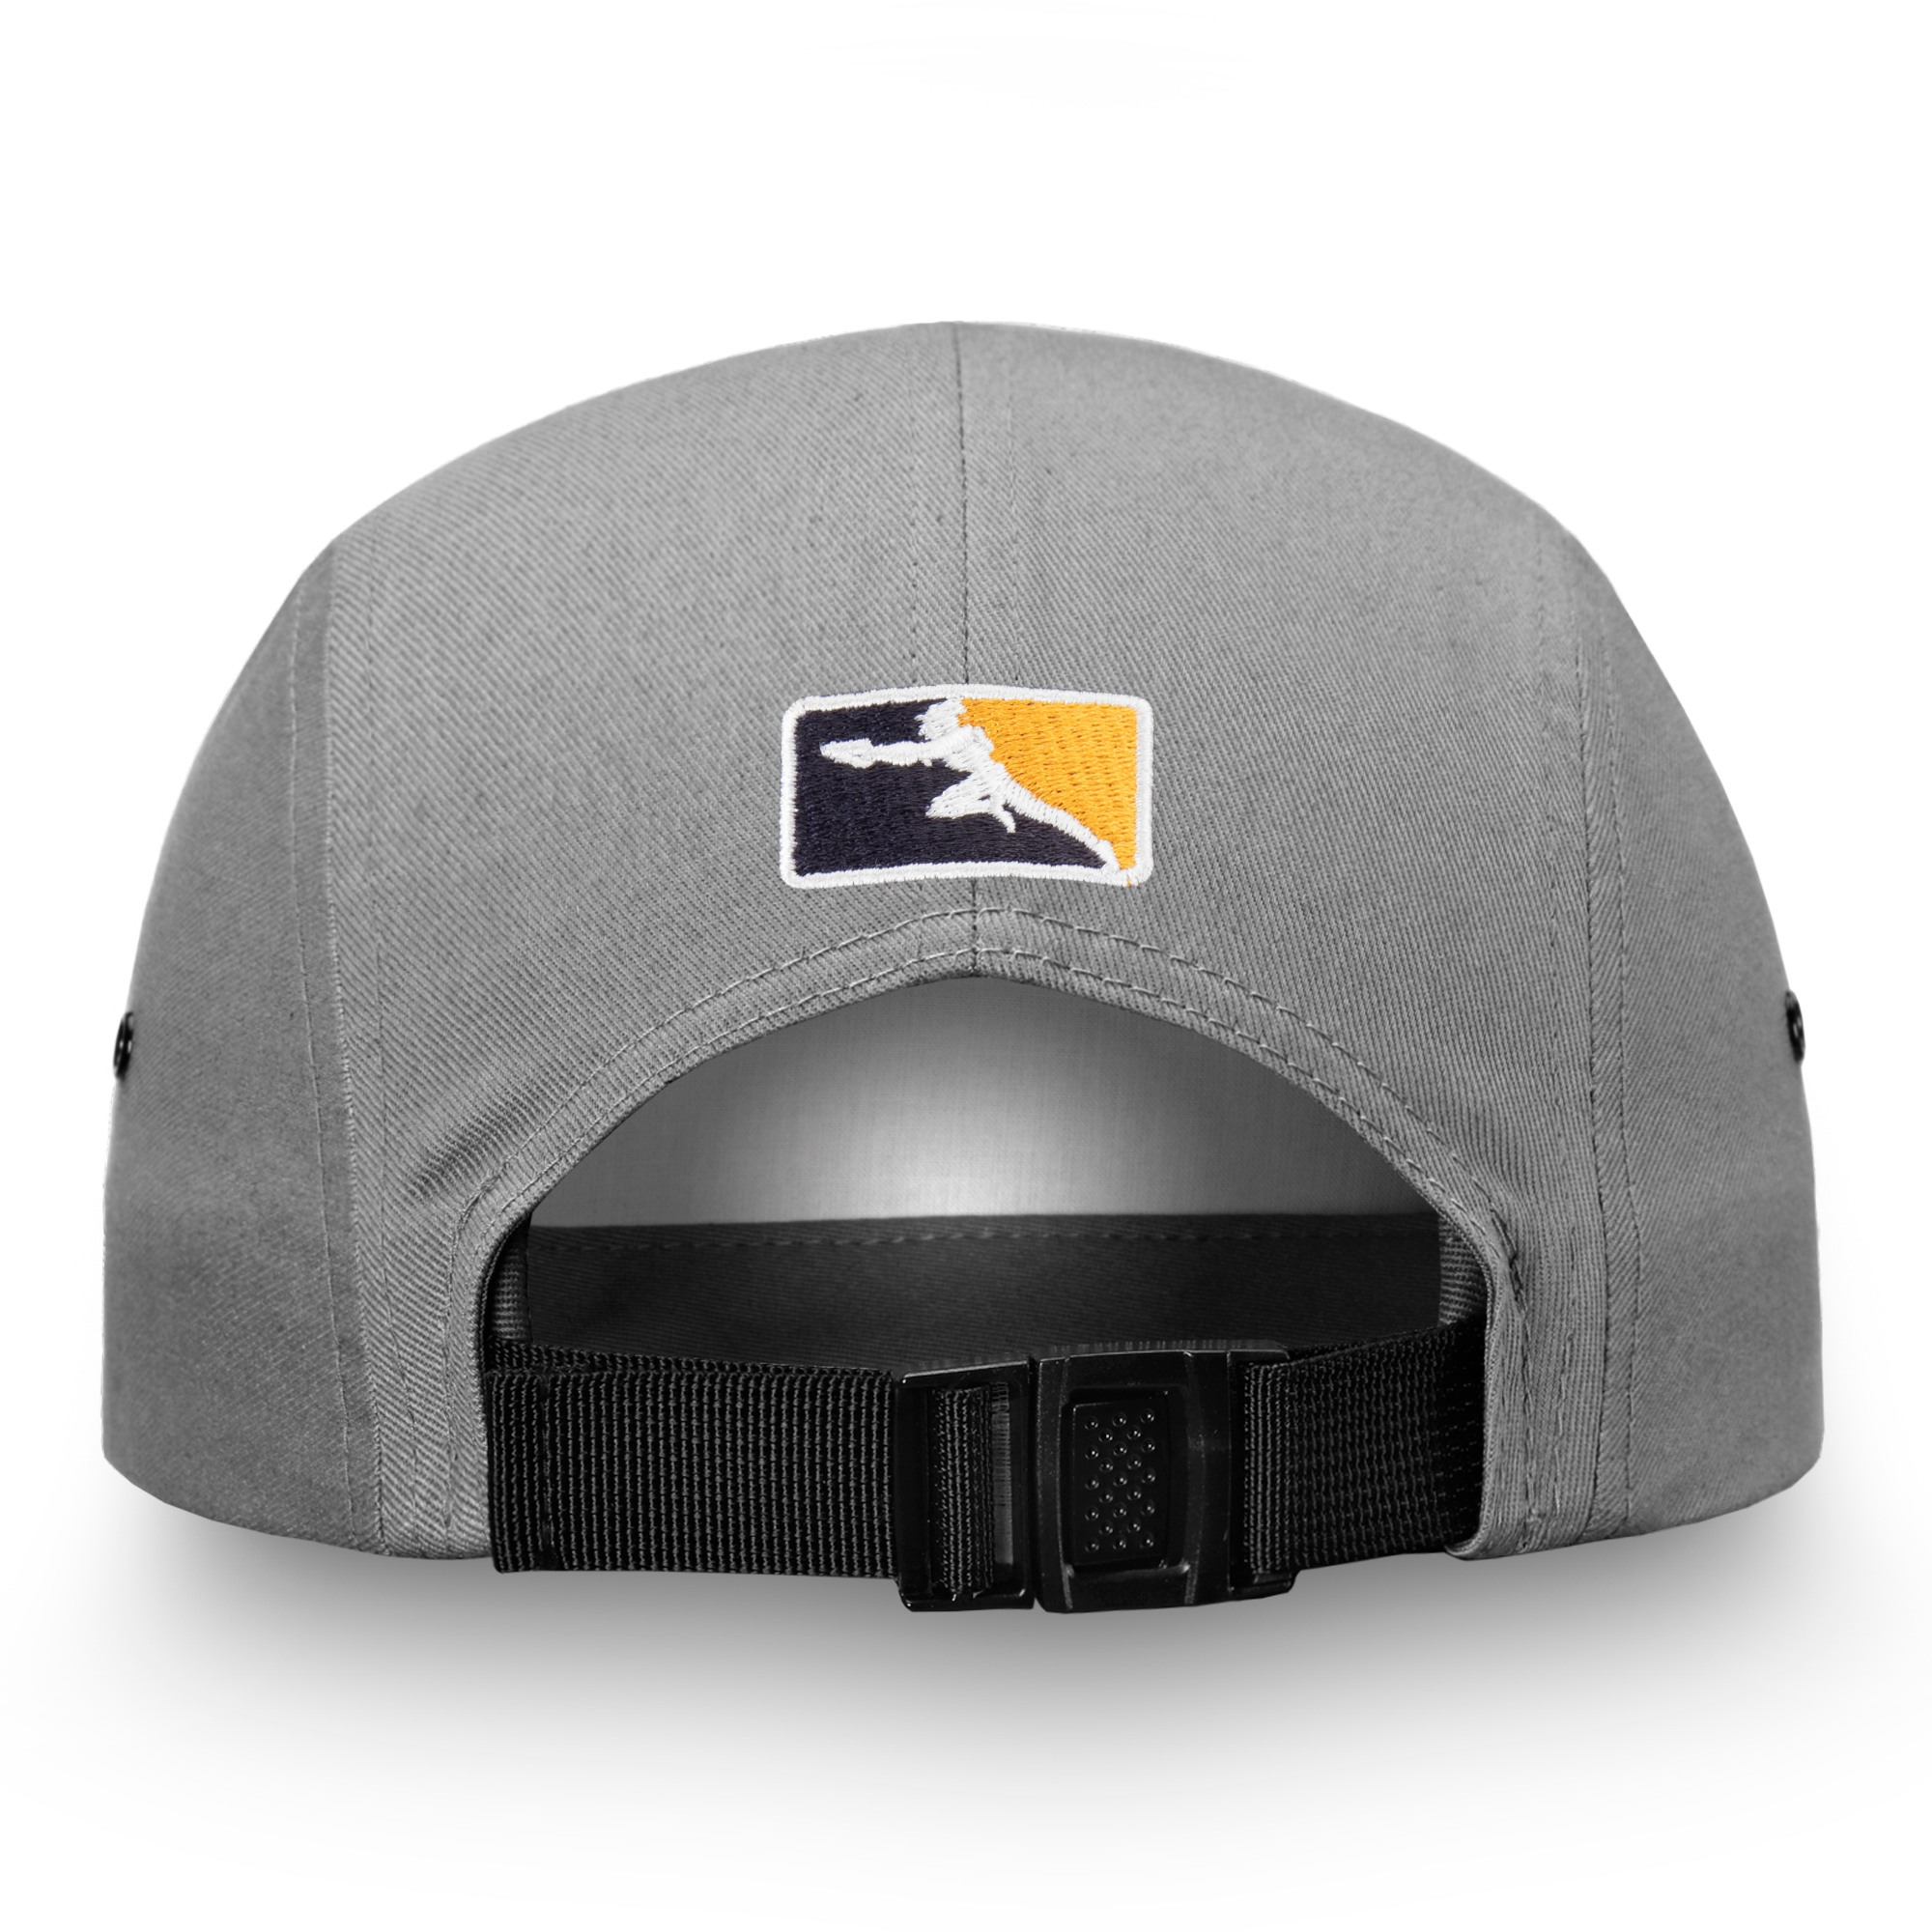 521583ea Guangzhou Charge Fanatics Branded Overwatch League Five-Panel Camper  Adjustable Hat - Gray - OSFA